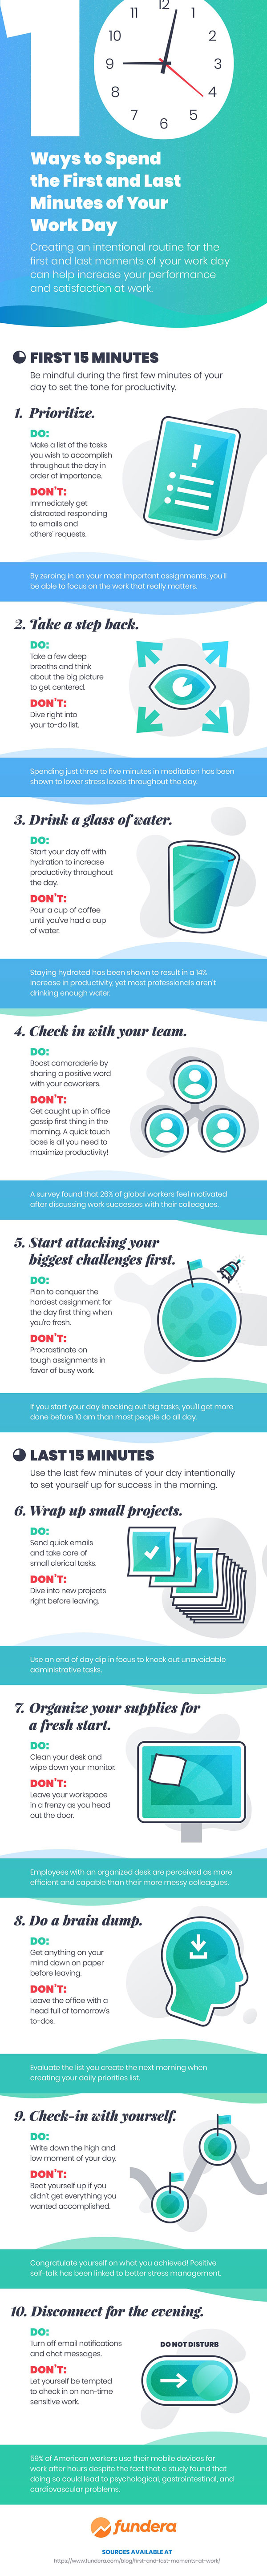 Boost Productivity at Work infographic